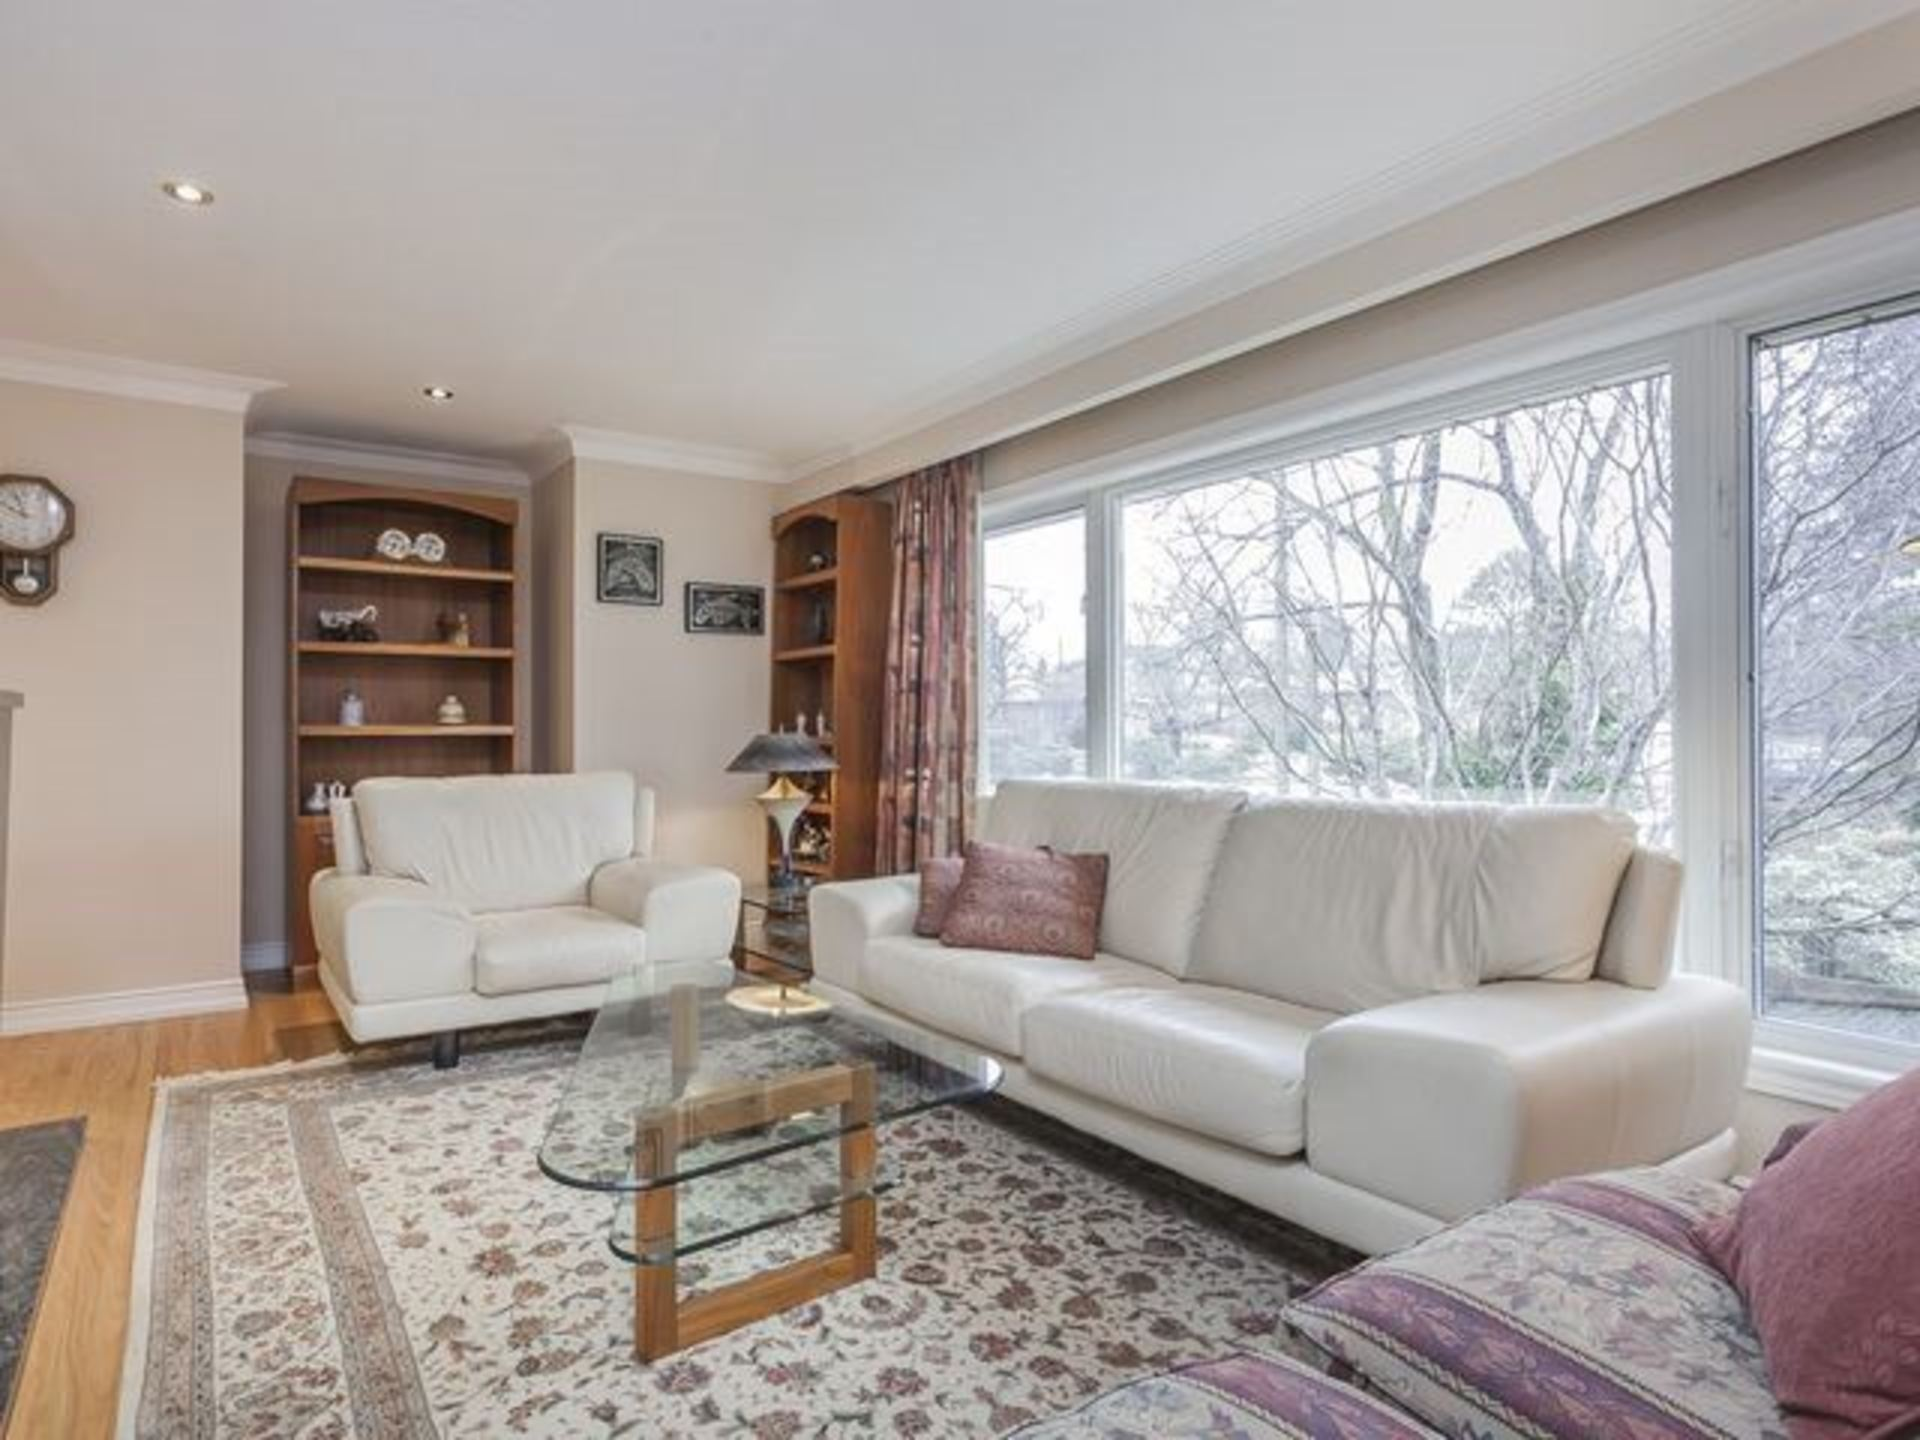 66 at SALE #454 - 53 Sumner Heights Drive, Bayview Village, Toronto